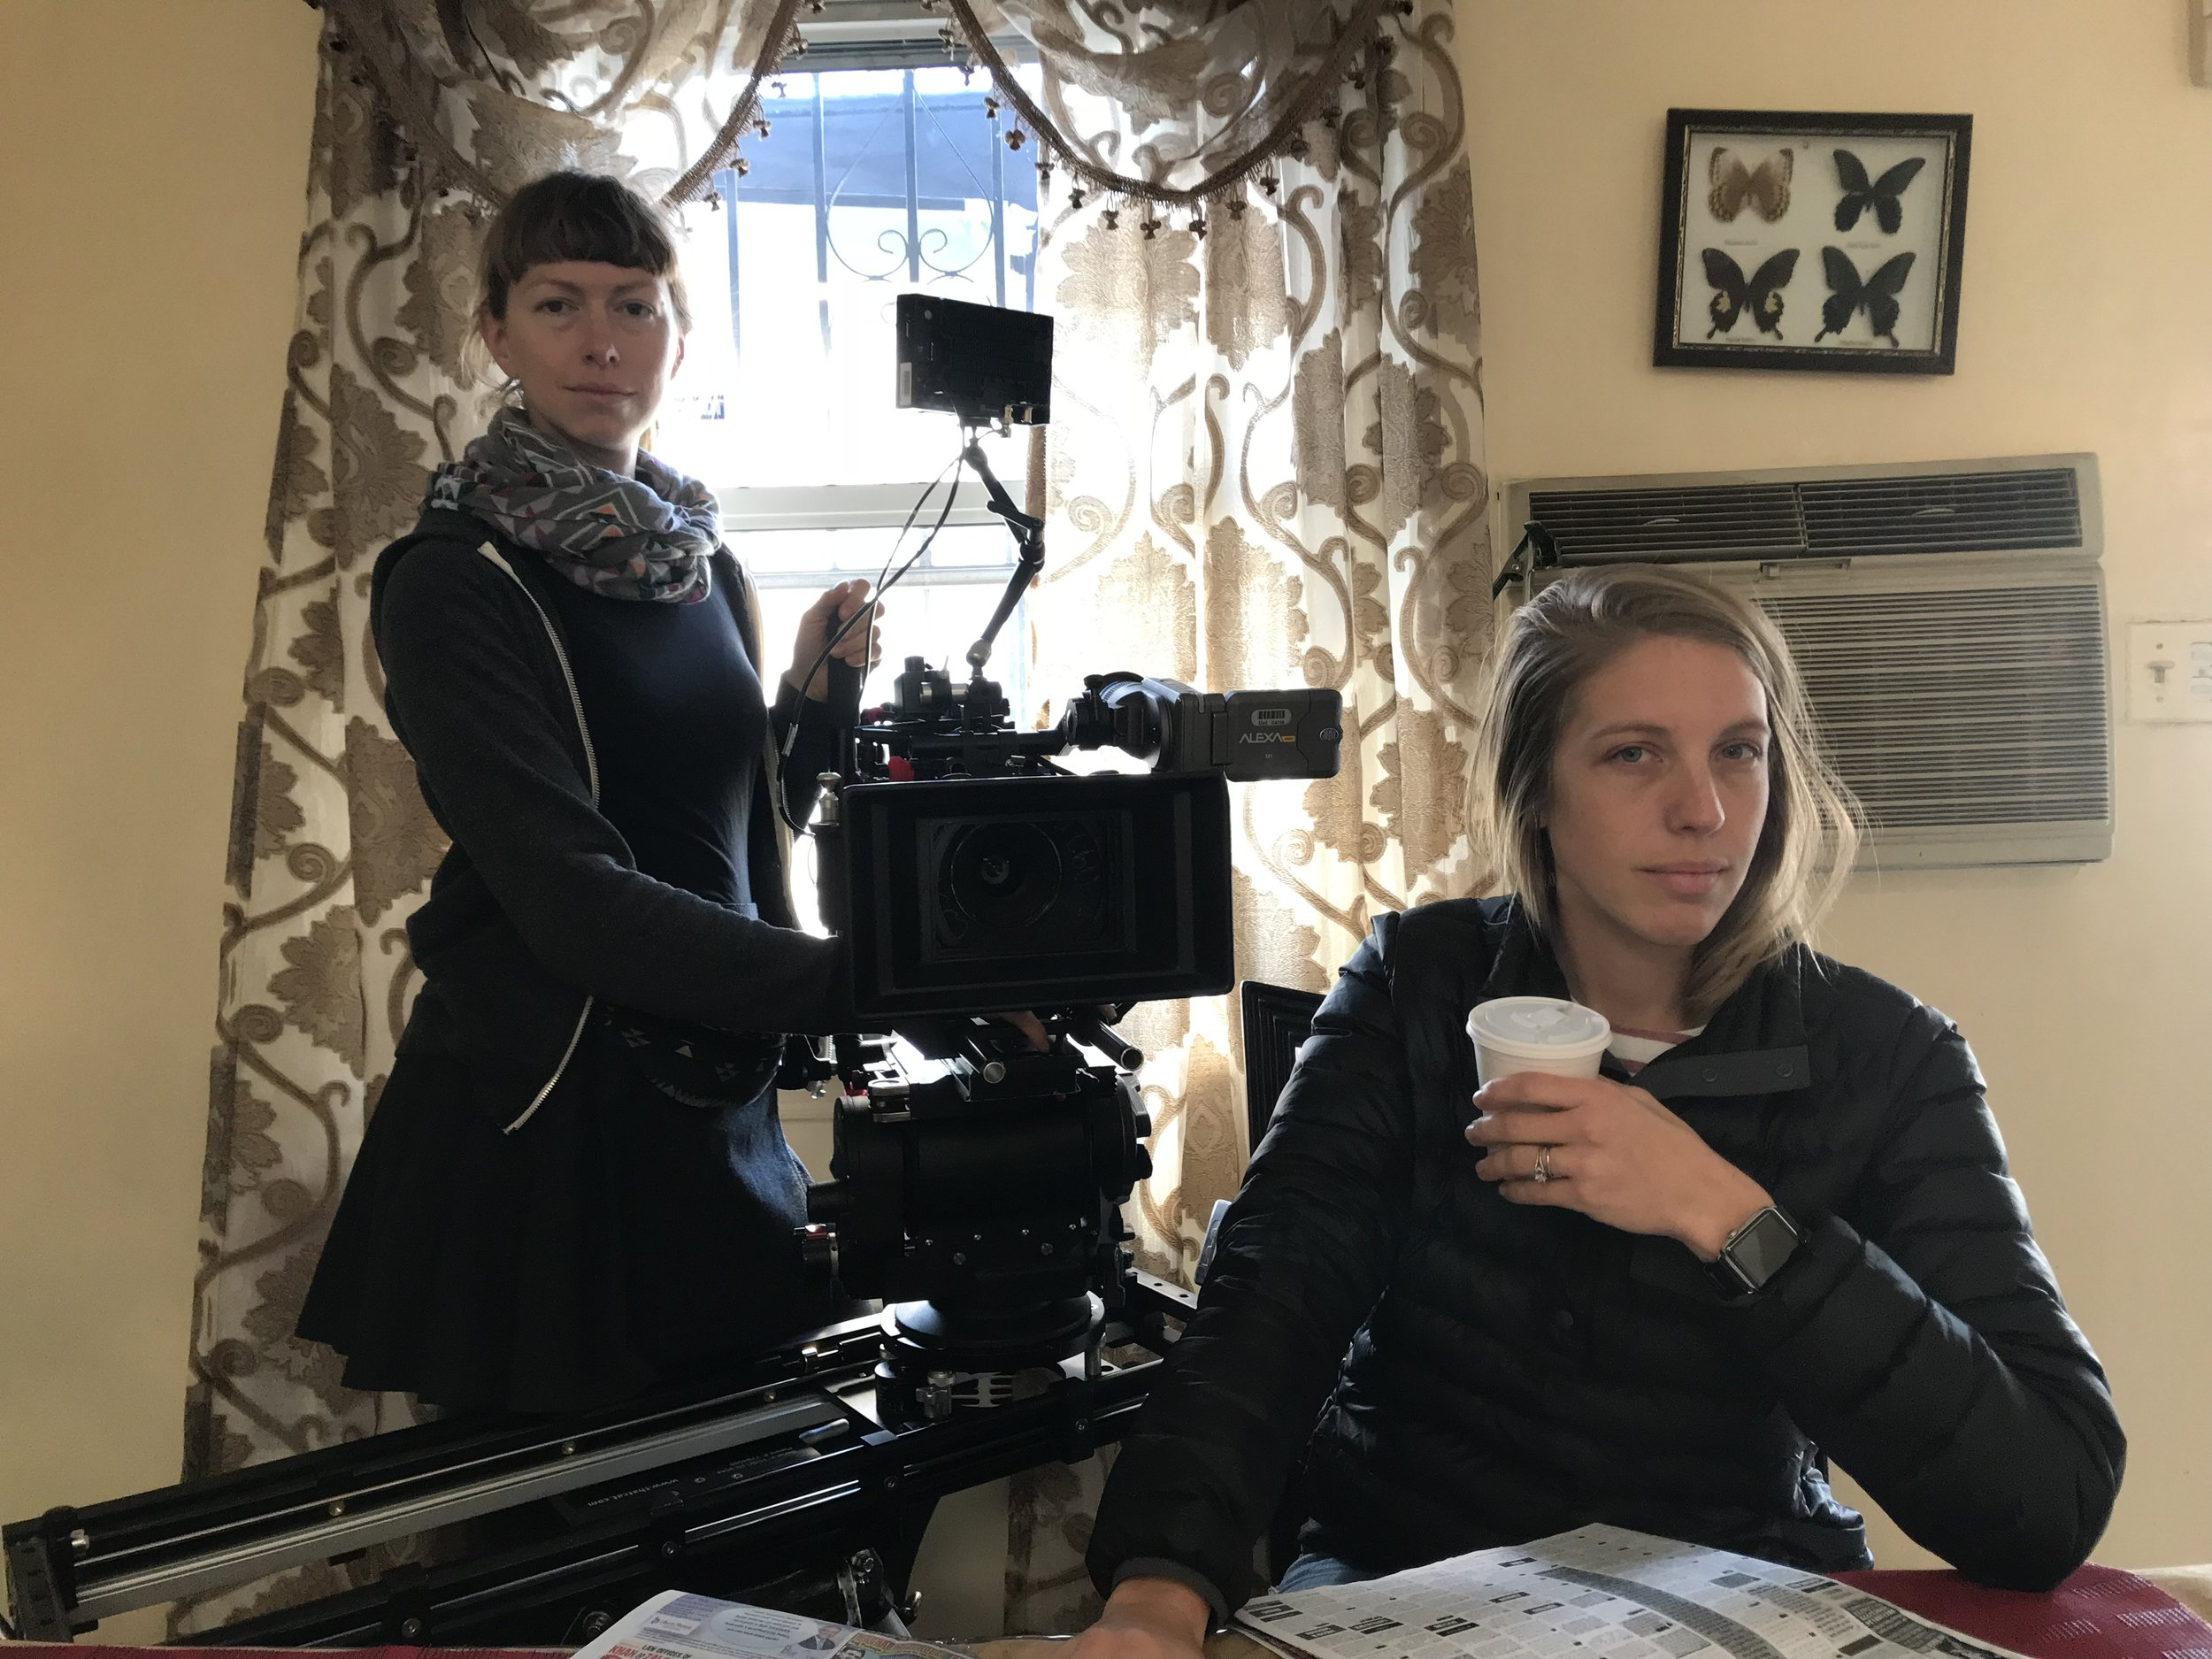 Julie Hotz is pictured on the left (Camera Operating) with Chloe Weaver (DP) on the right | Photo Courtesy of  Amanda Deery